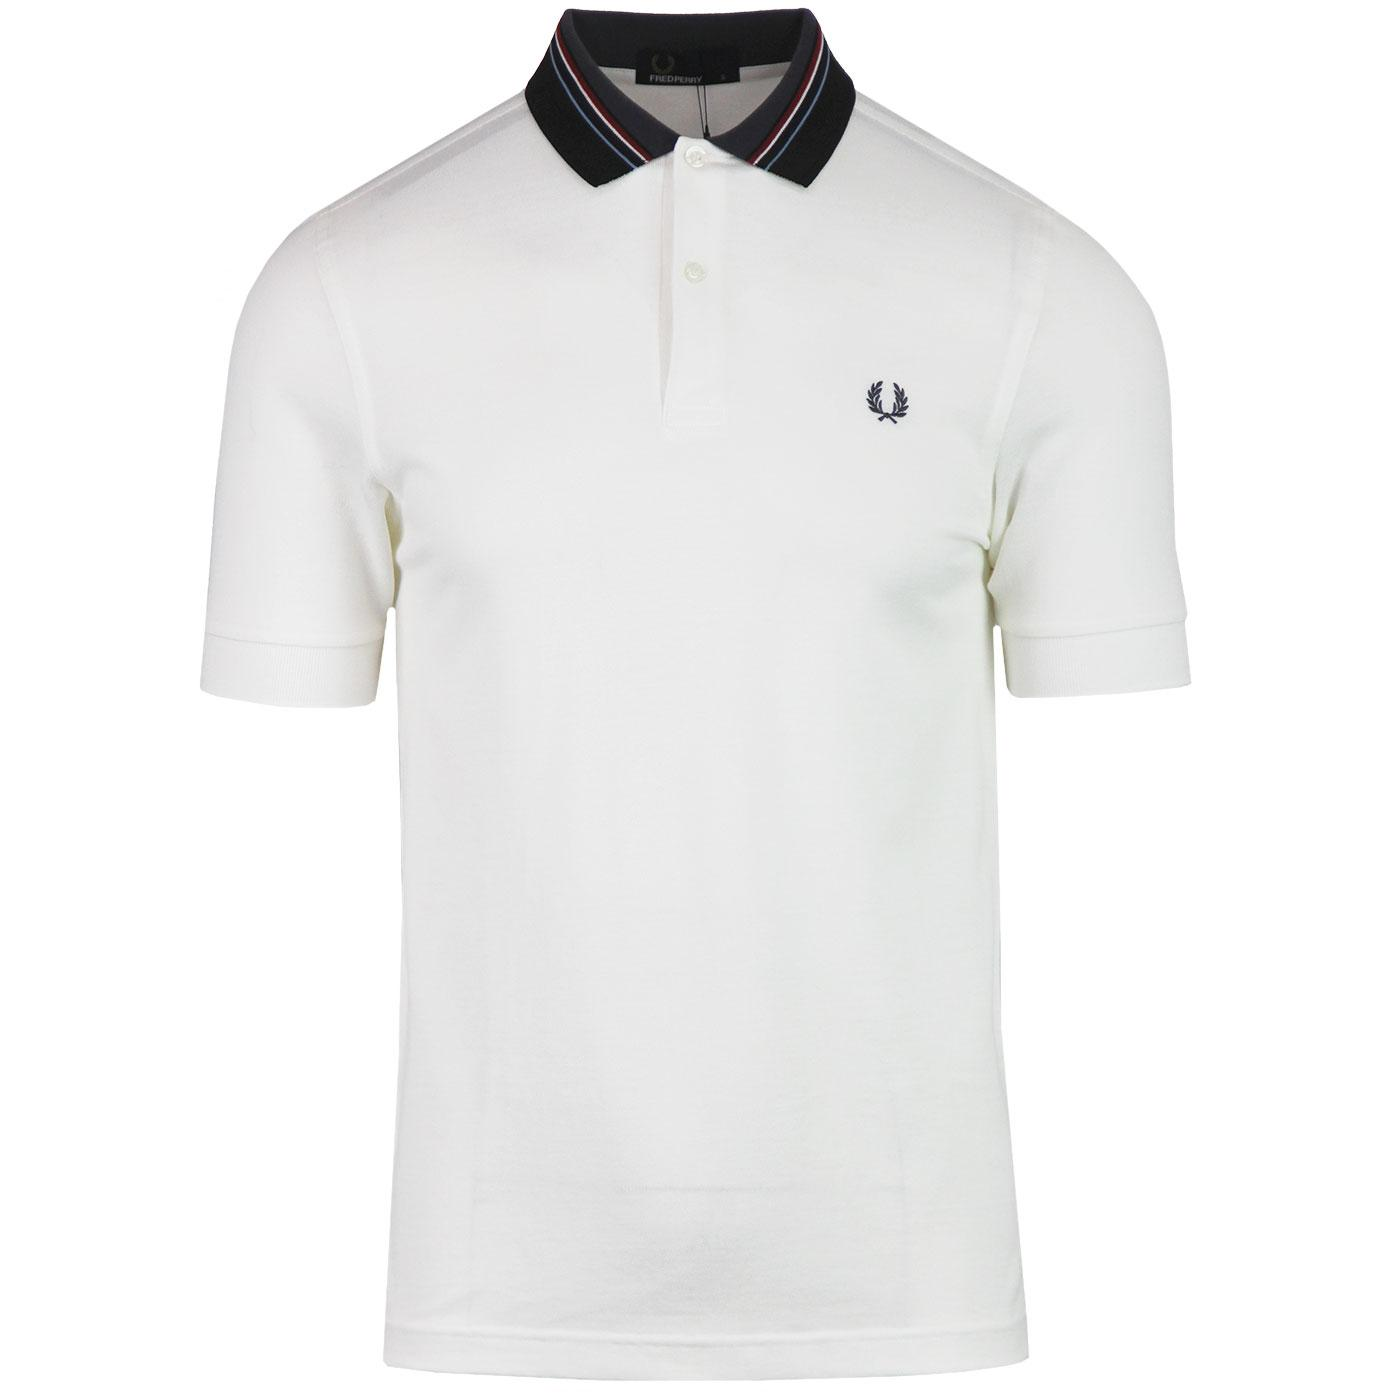 FRED PERRY Retro Mod Multi Stripe Collar Polo SW